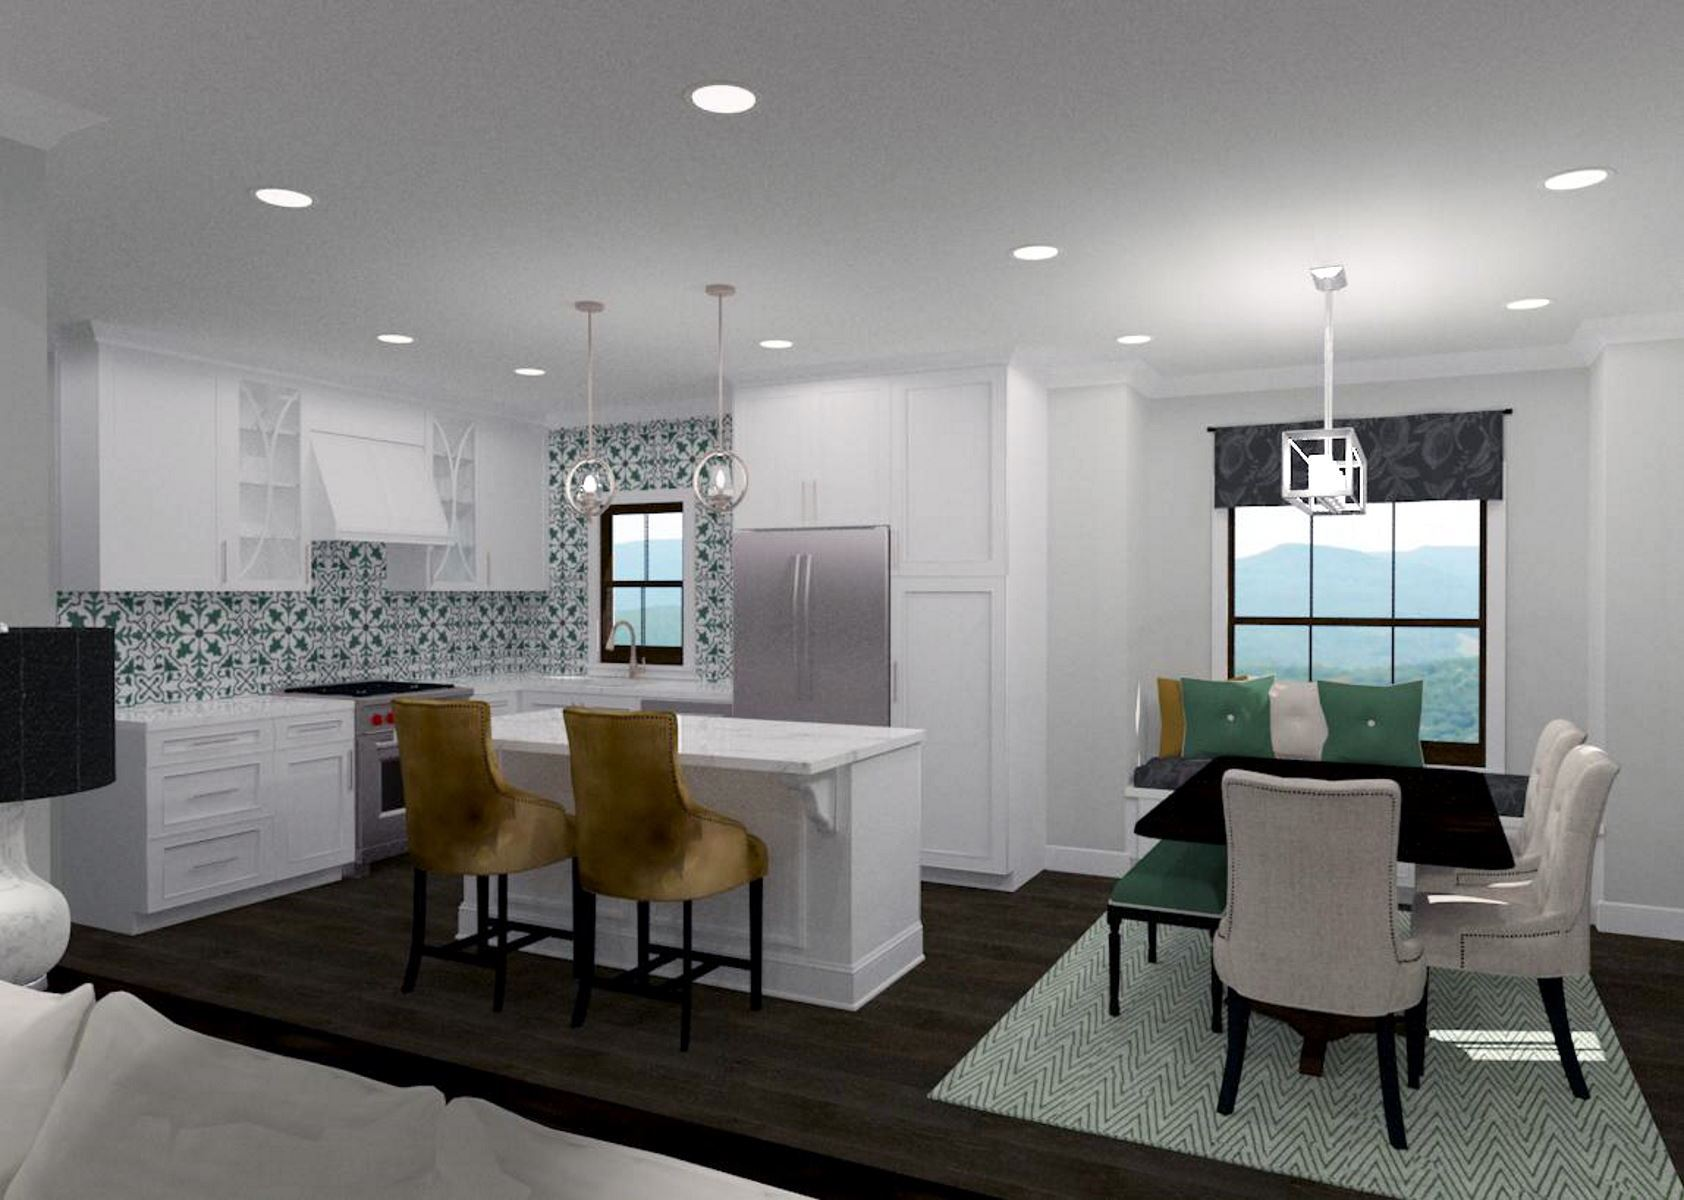 Kitchen with adjacent dining area